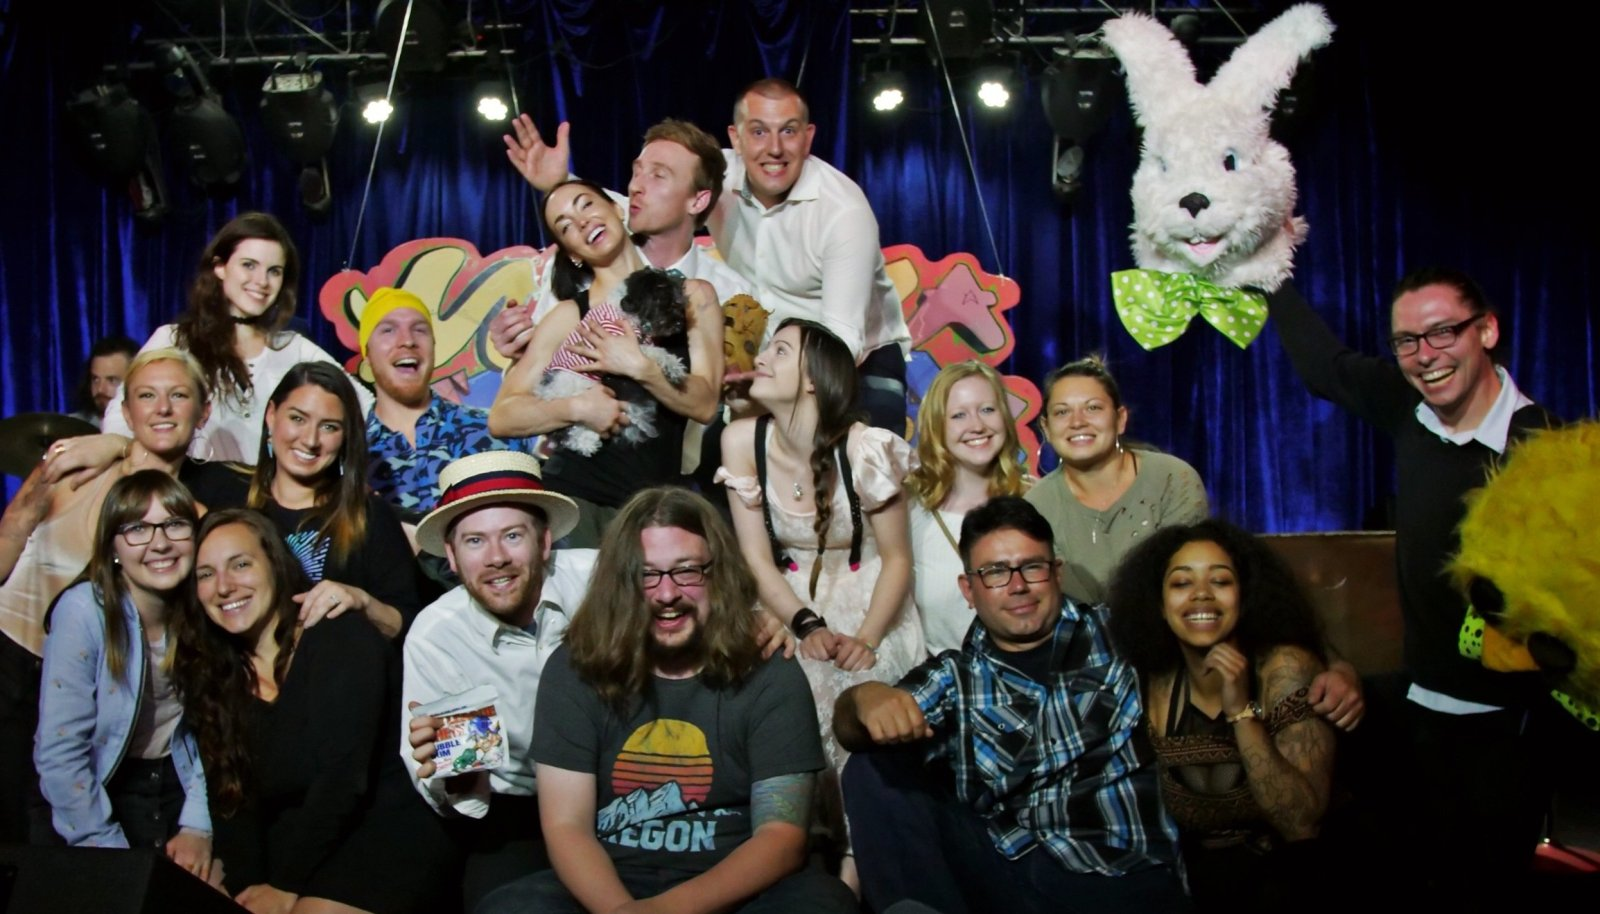 """group photo """"Who's the Ross?"""" Aaron Ross comedian comedy humor funny Portland PDX late-night talk show live Dante's"""